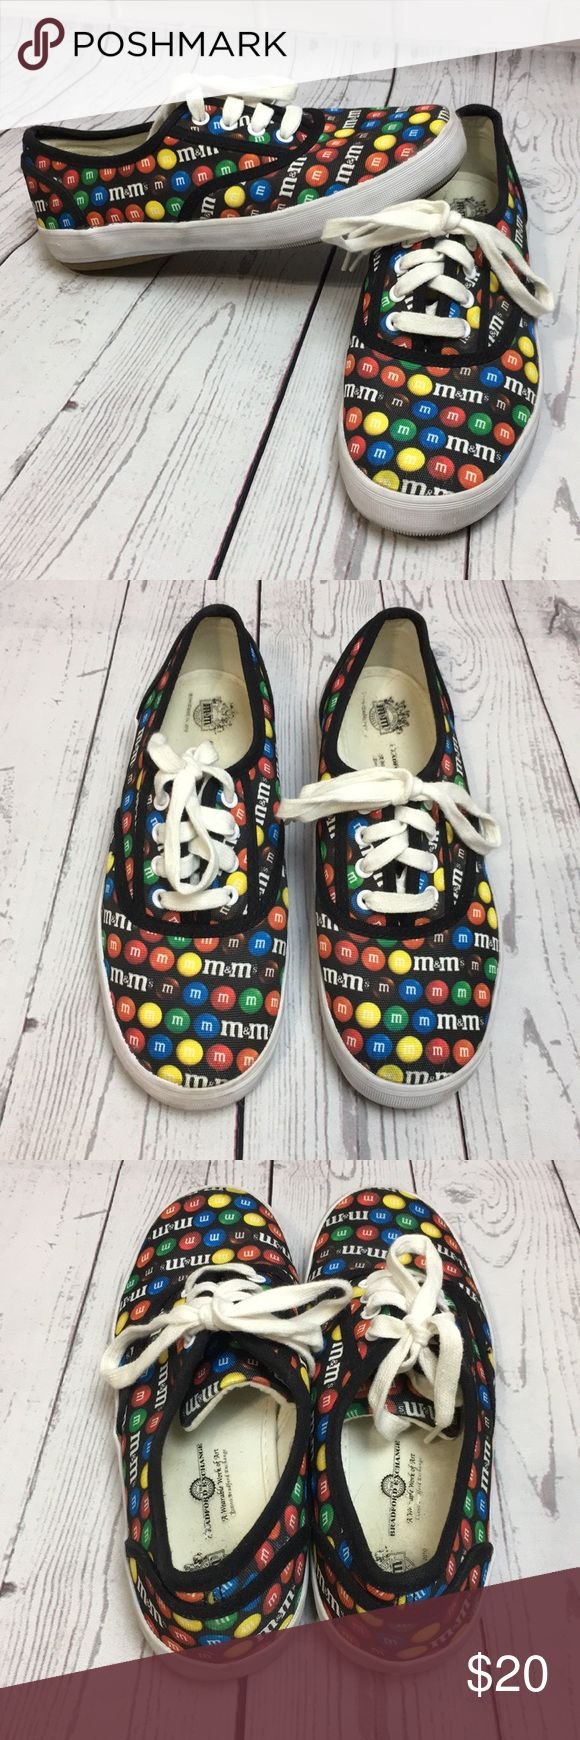 "Bradford Exchange M&M Sneakers Women's Shoe sz 6 These cute M&M shoes are in good pre-owned condition. They show some signs of wear but are clean. Thank you Goodwill for marking a big ""C"" on the soles 😒 Women's size 6 Comes from a smoke free home Any questions please don't hesitate to ask. Bradford Exchange Shoes Sneakers"